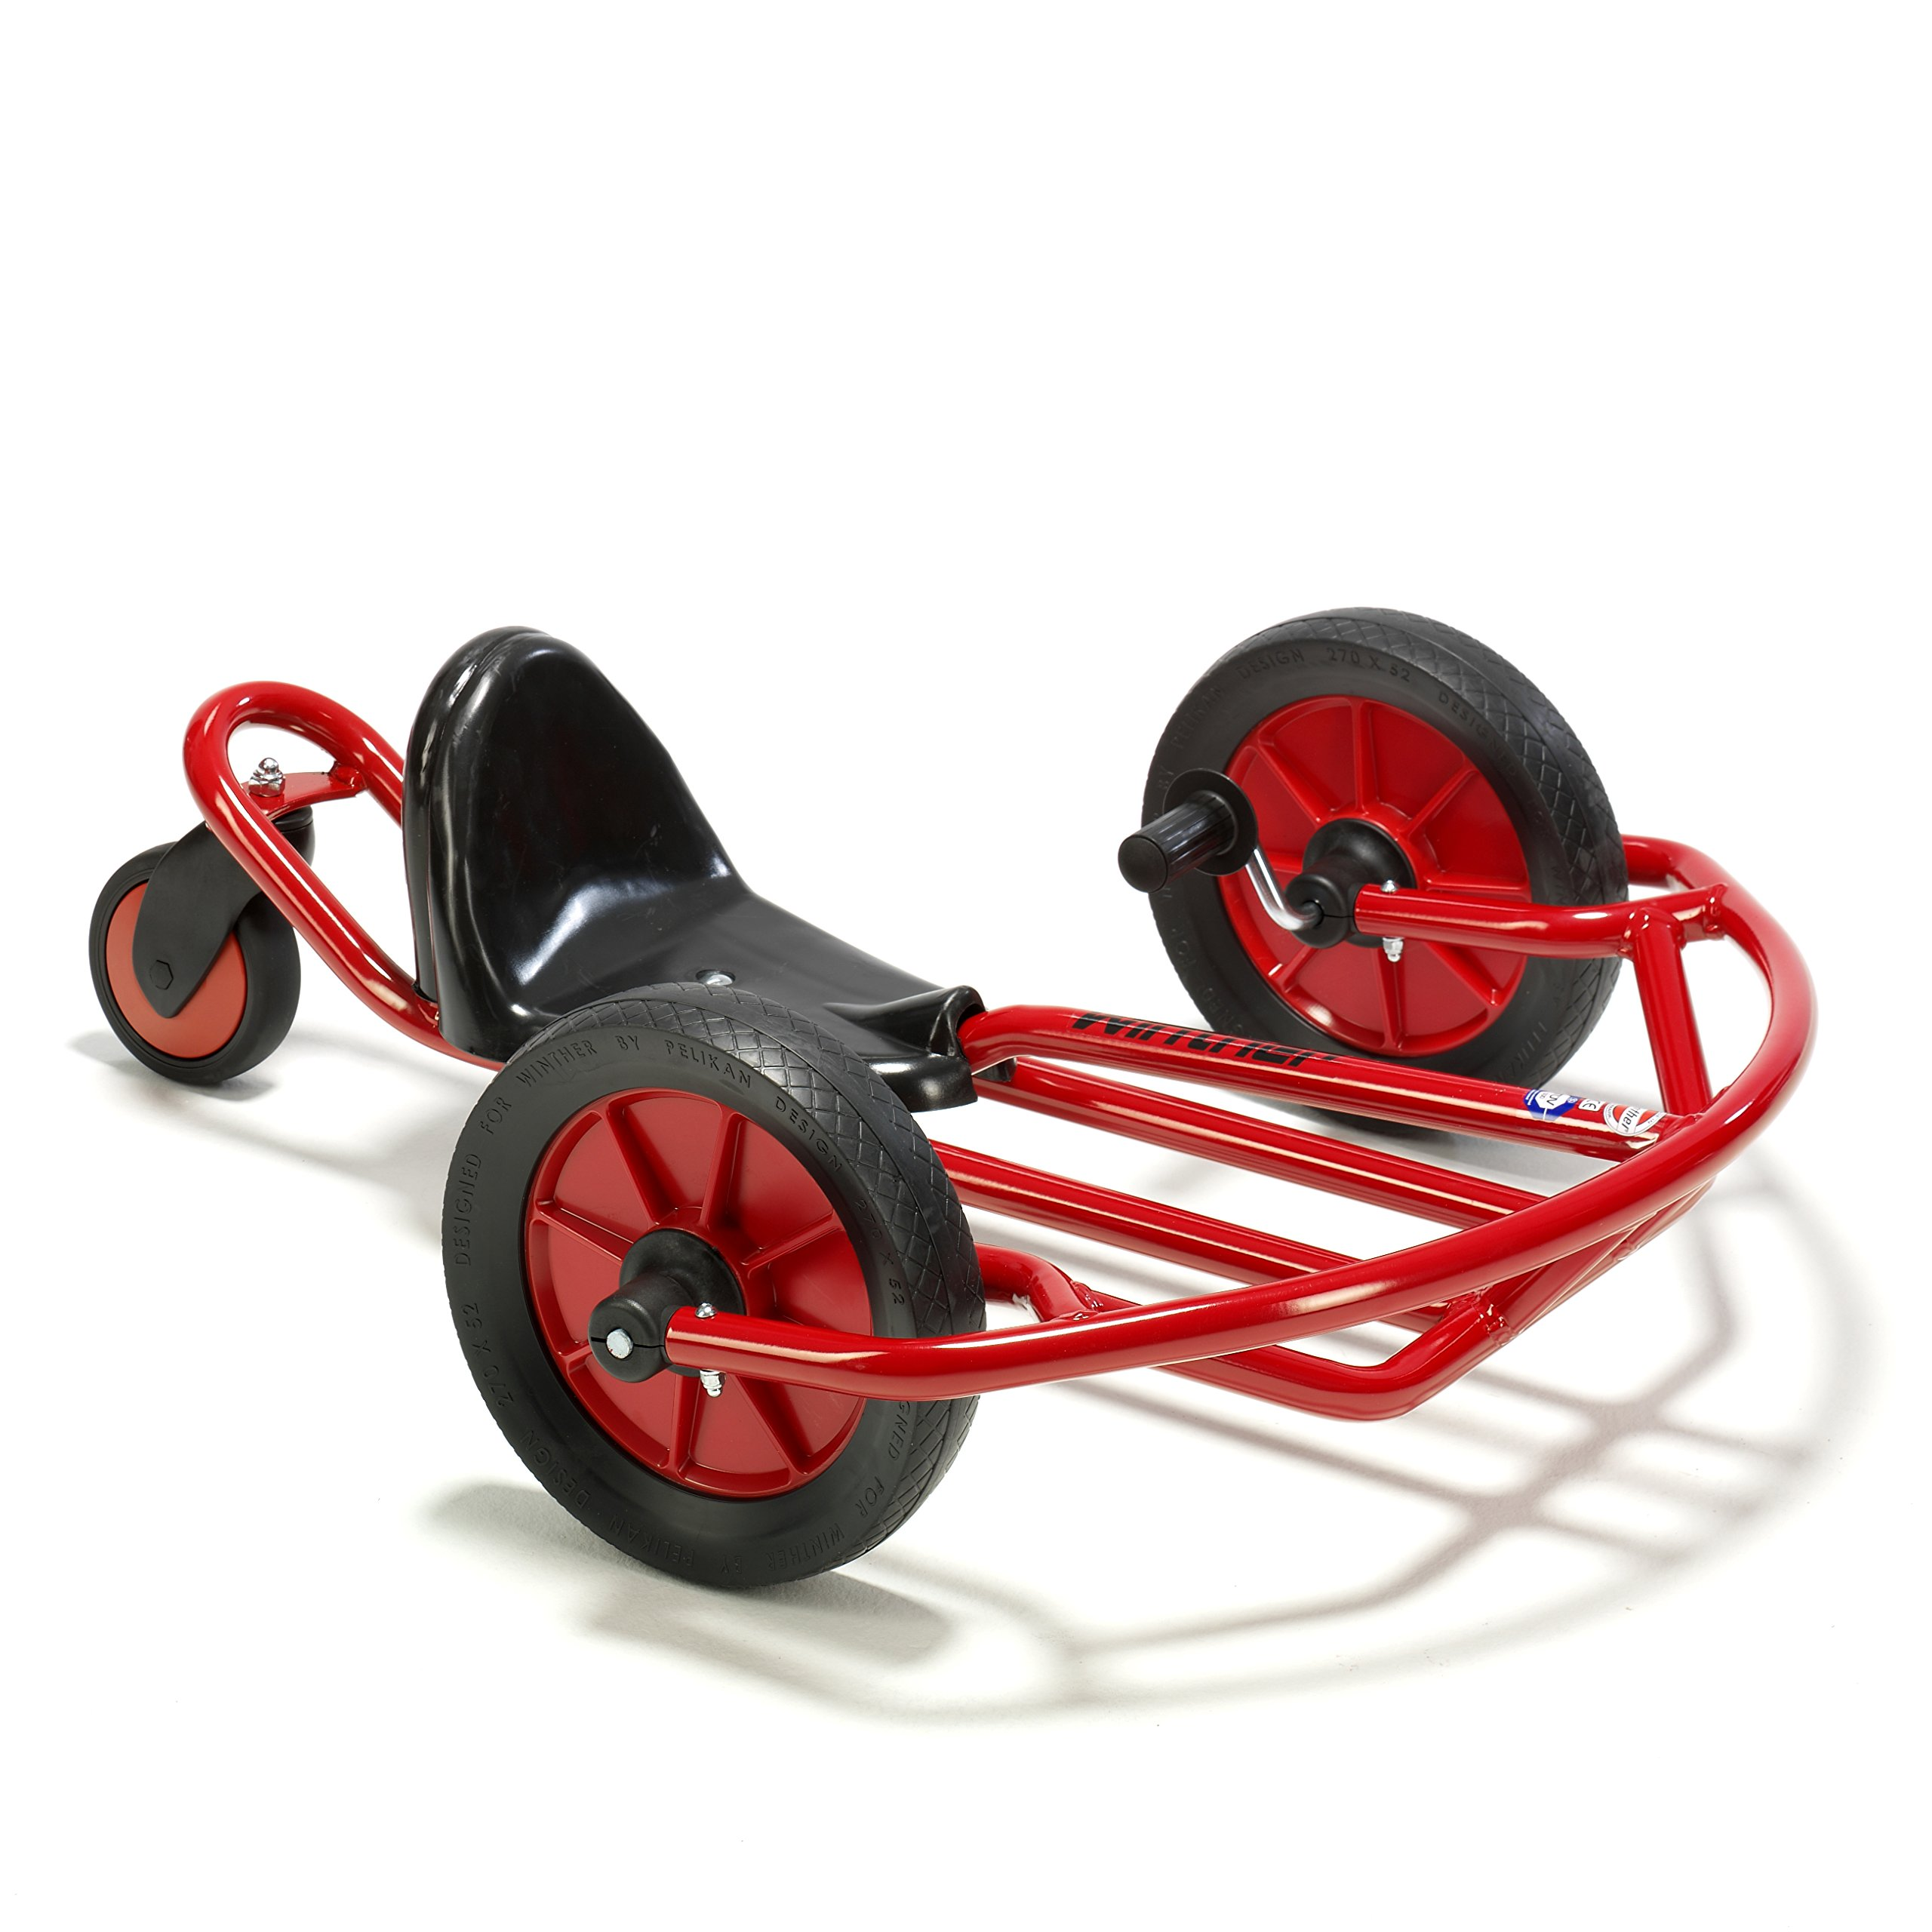 Winther WIN464 Swingcart, Ages 3-8 Grade Kindergarten to 1, 11.3'' Height, 28.23'' Wide, 27.32'' Length